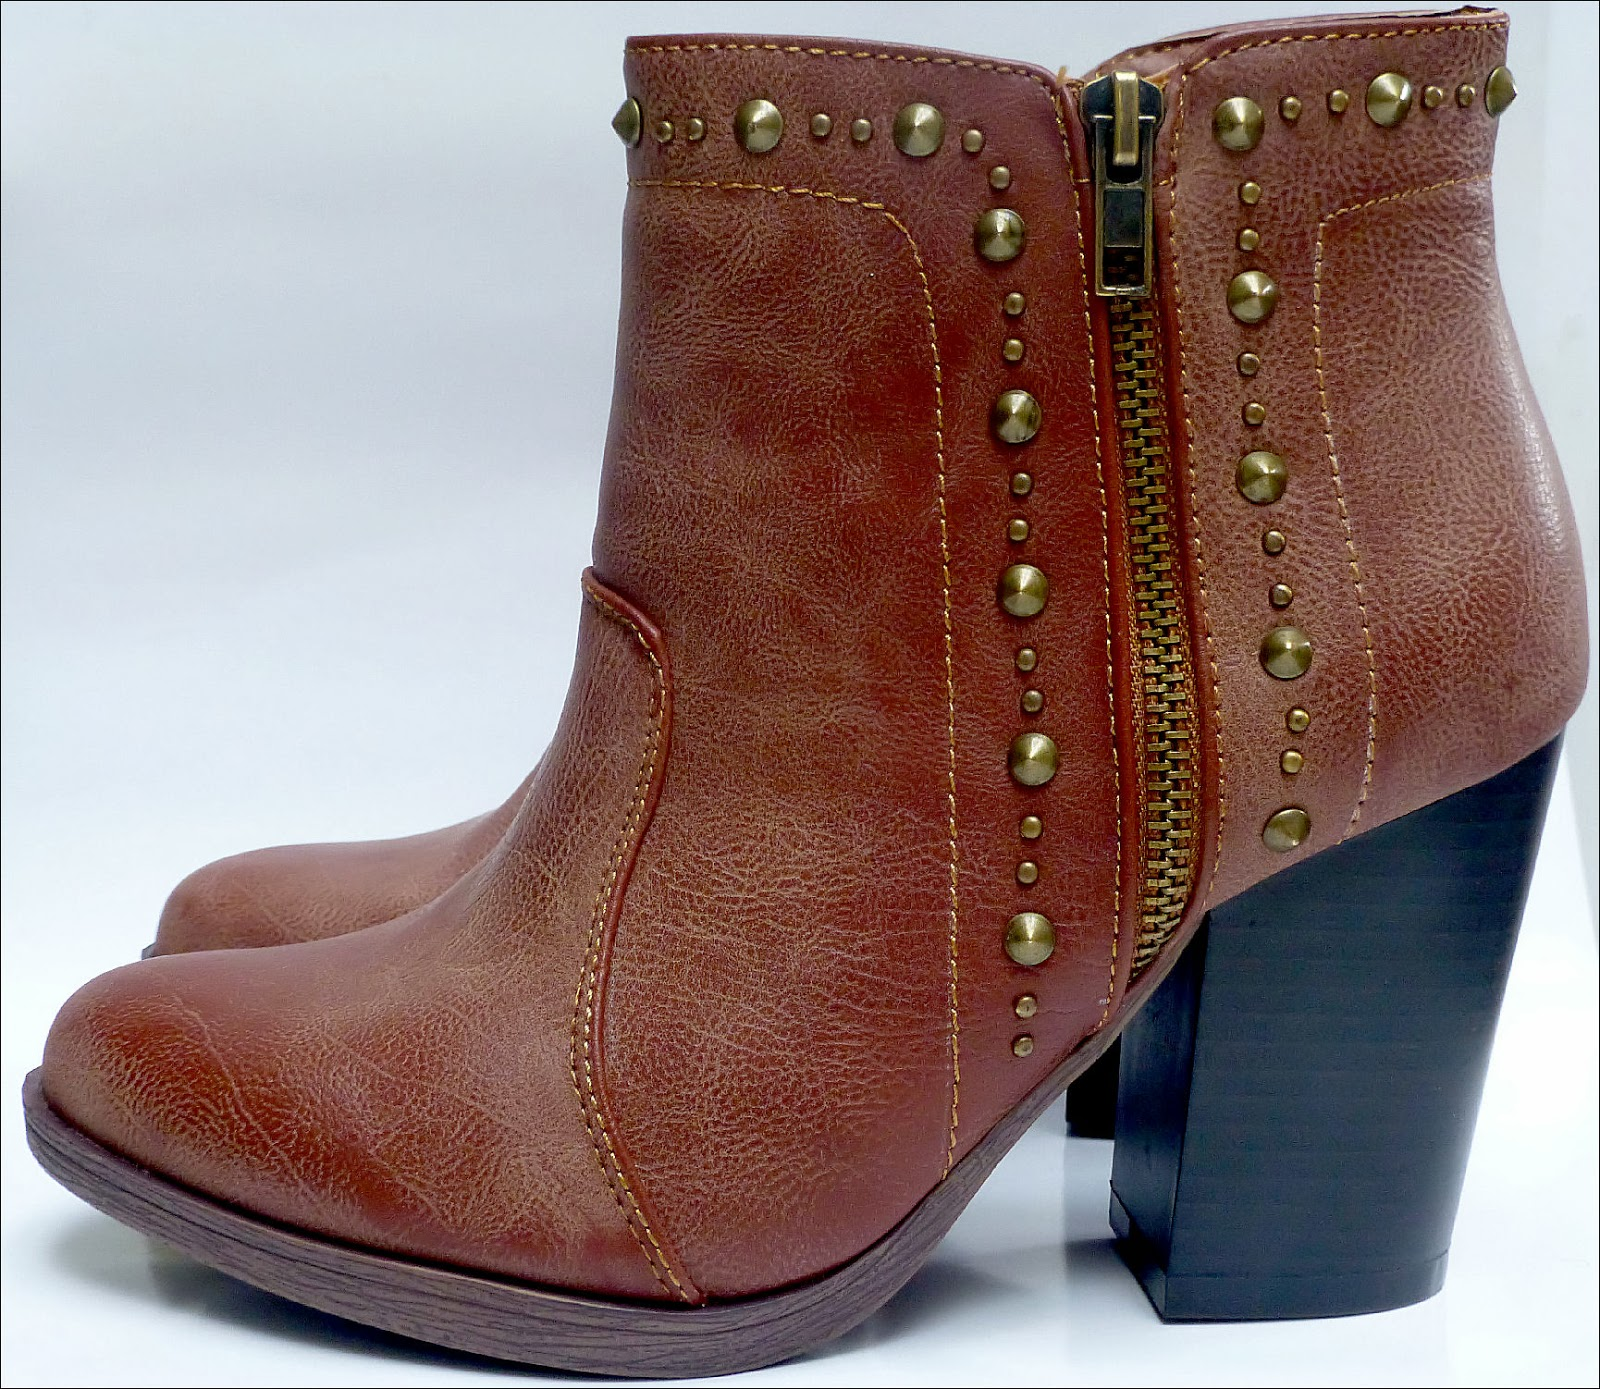 Brown Stud Autumn Winter Ankle Boots from New Look